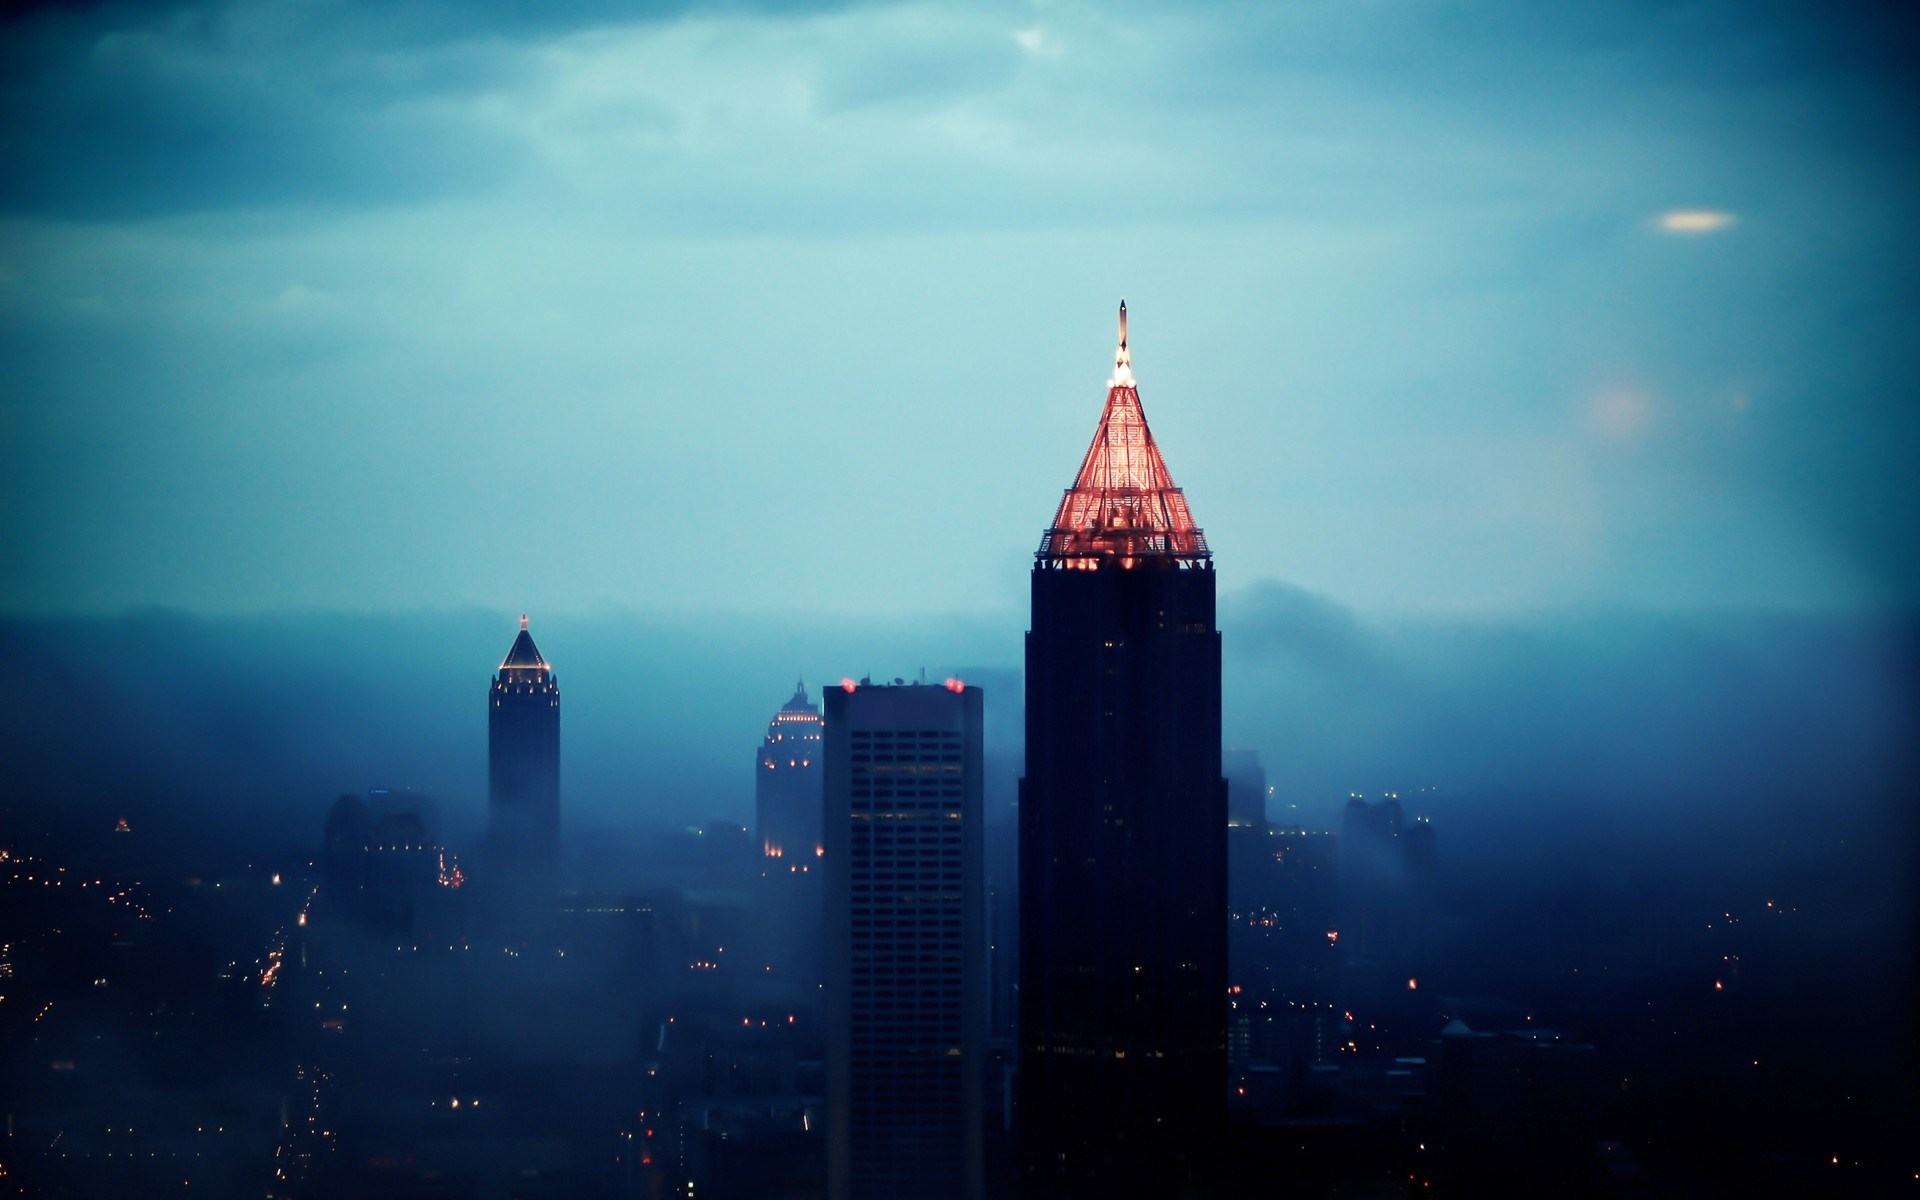 foggy city wallpaper - wallpapersafari